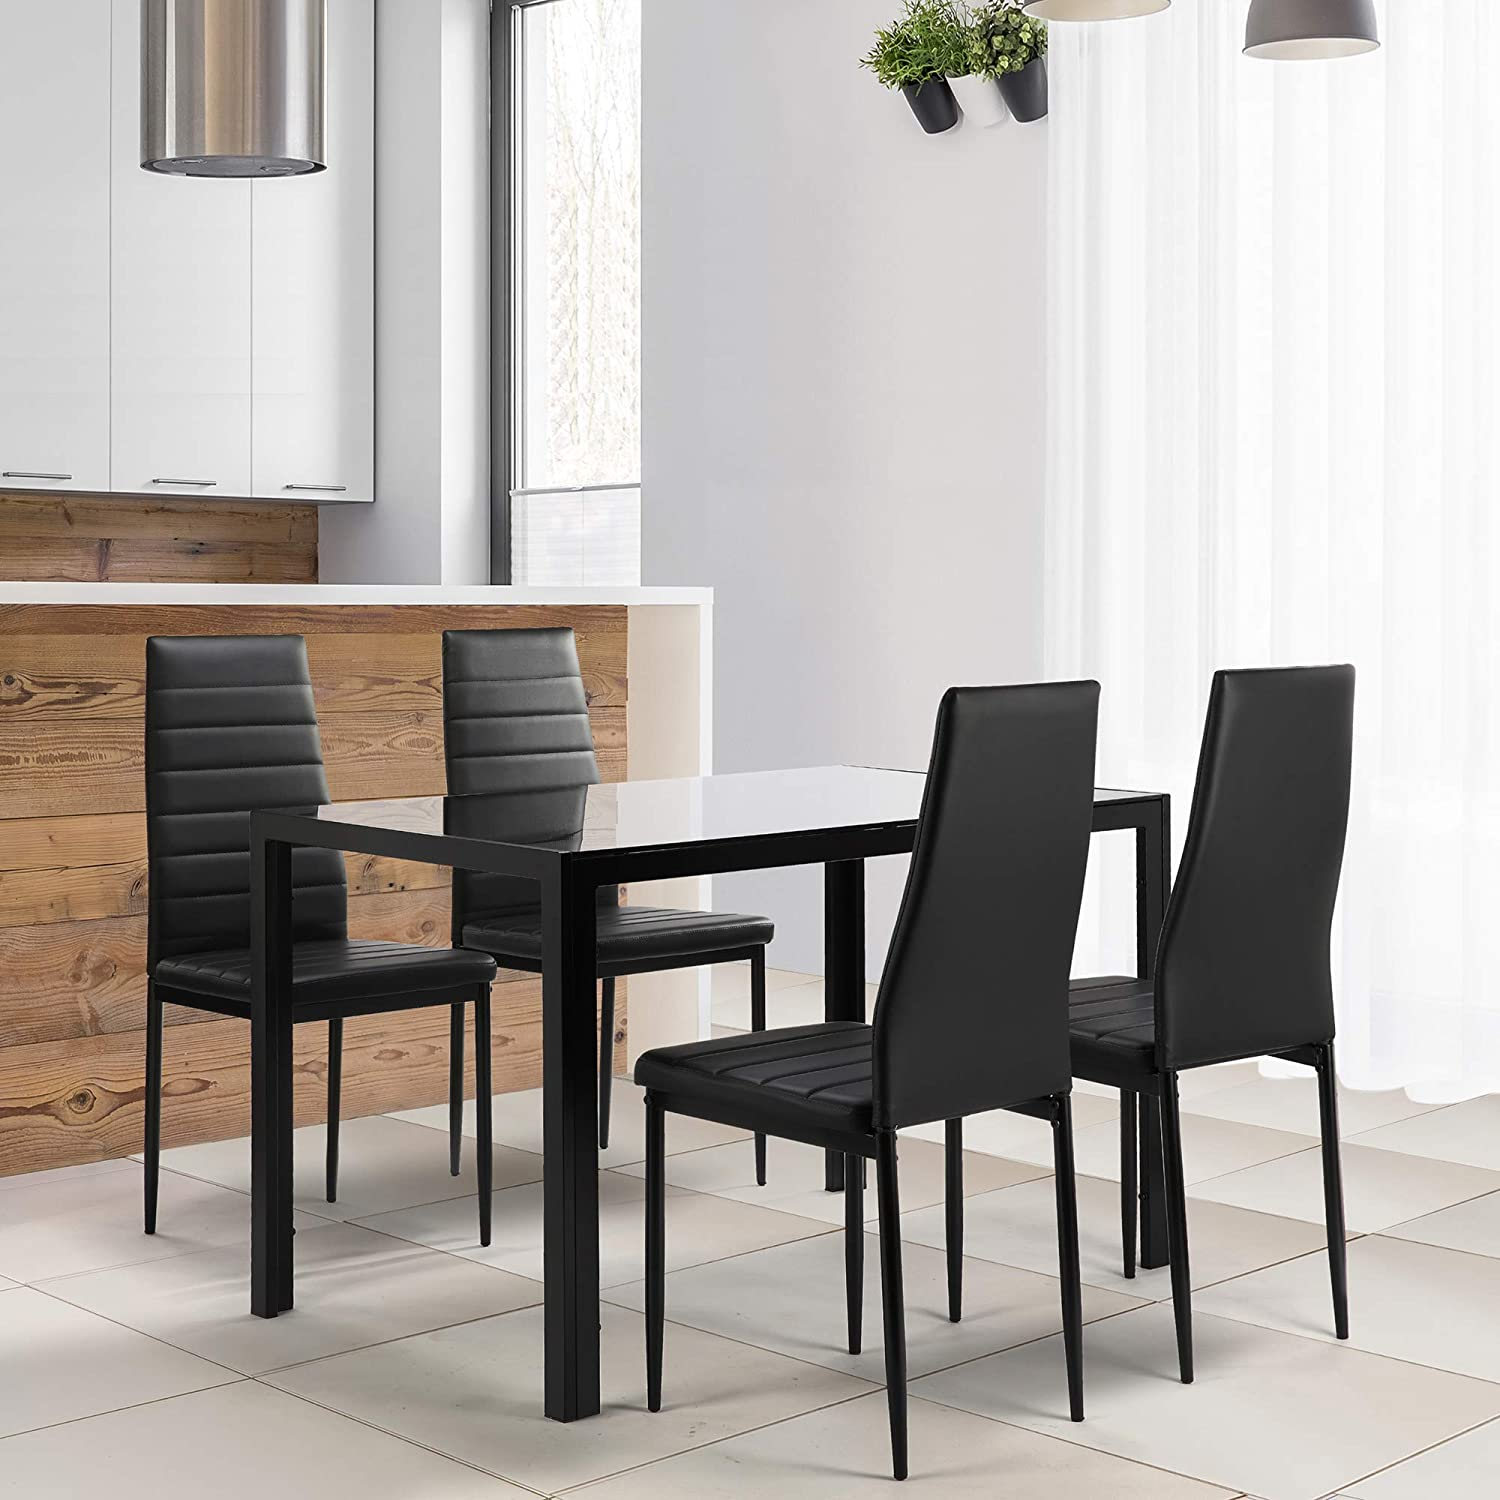 N Black A 5 Pieces Dining Table Set Kitchen Room Tempered Glass Dining Table With 4 Pu Leather Chairs For Small Spaces Home Furniture Rectangular Table Chair Sets Kitchen Dining